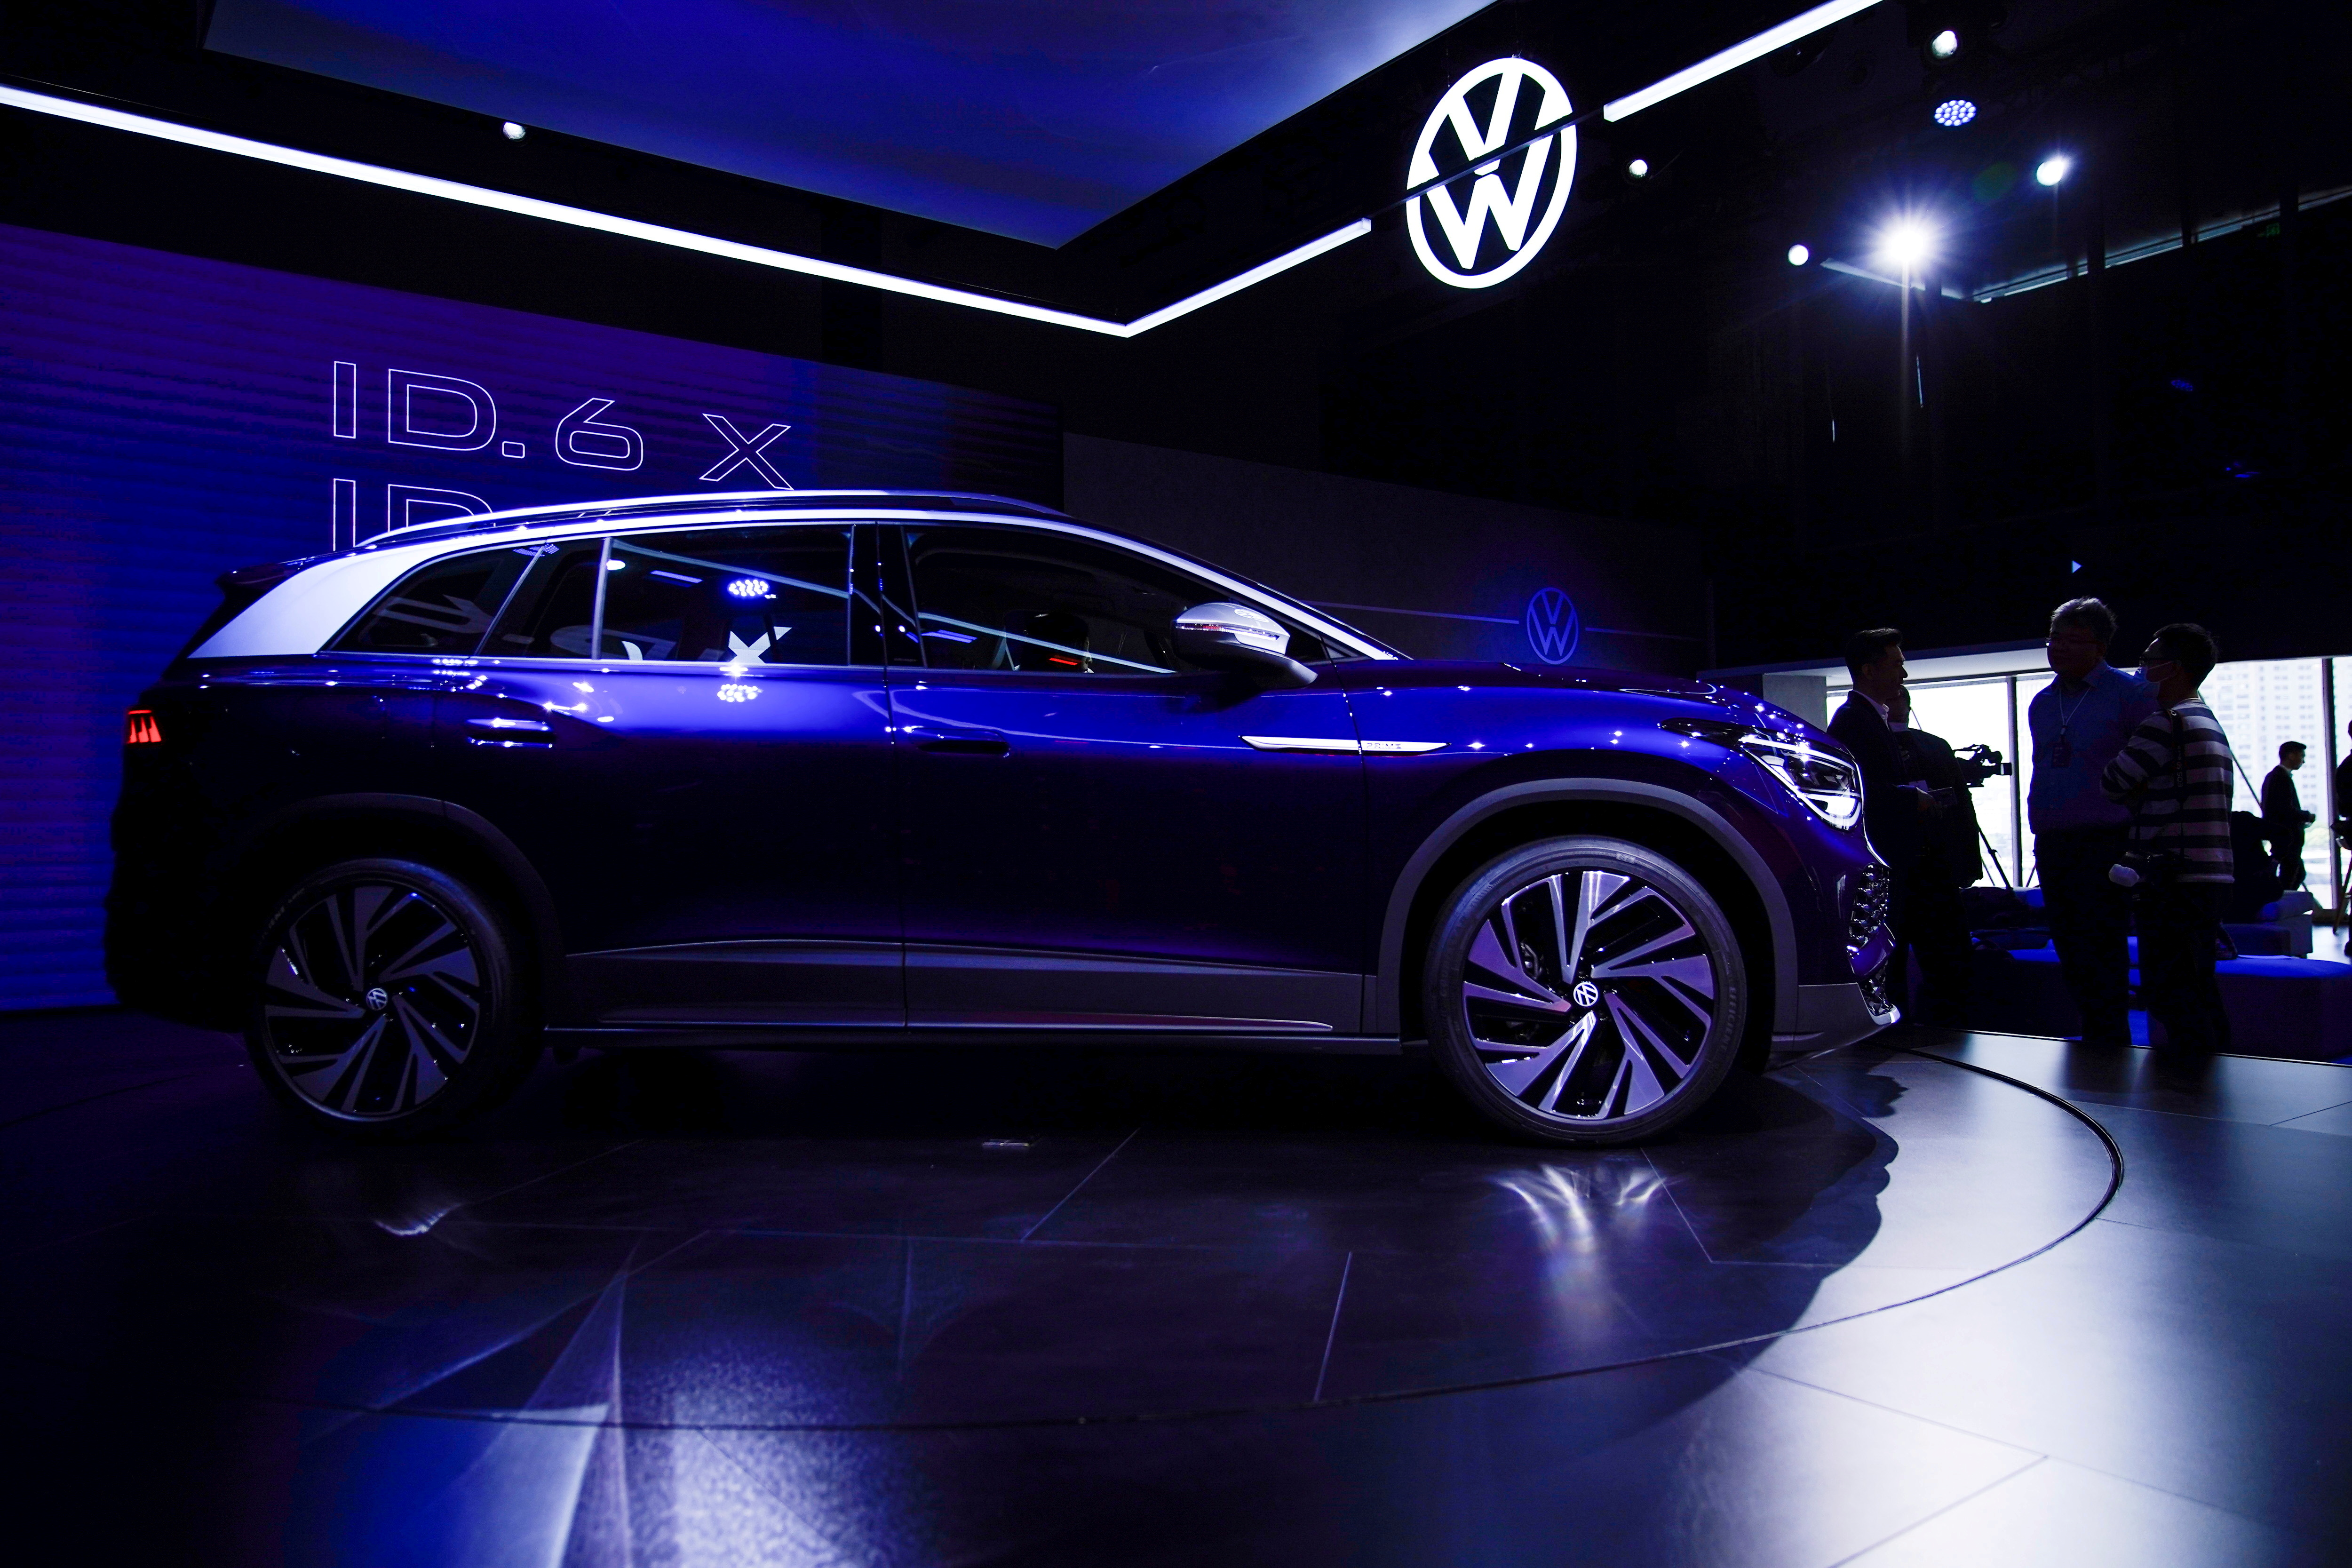 A Volkswagen ID.6 X is displayed ahead of the Shanghai Auto Show, in Shanghai, China April 18, 2021. REUTERS/Aly Song